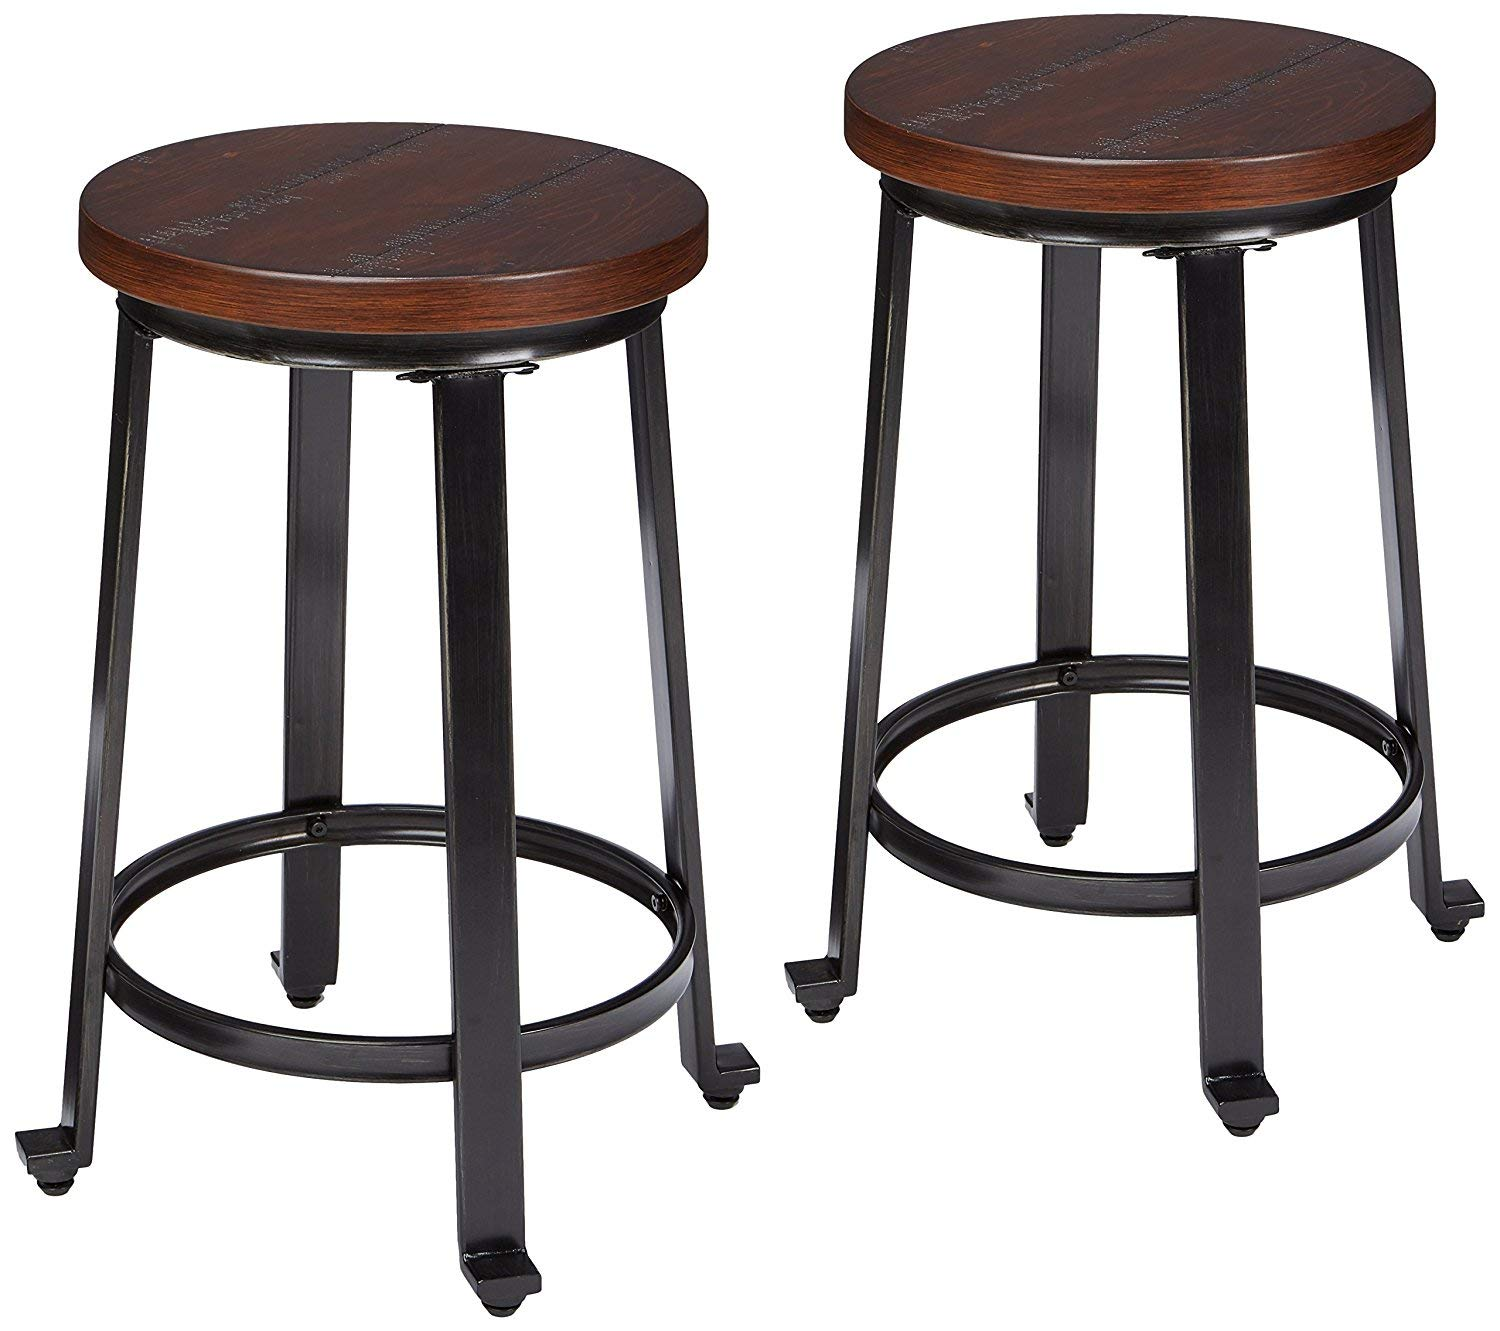 35 Best Cheap Bar Stools You Can Buy For Under $80 In 2019